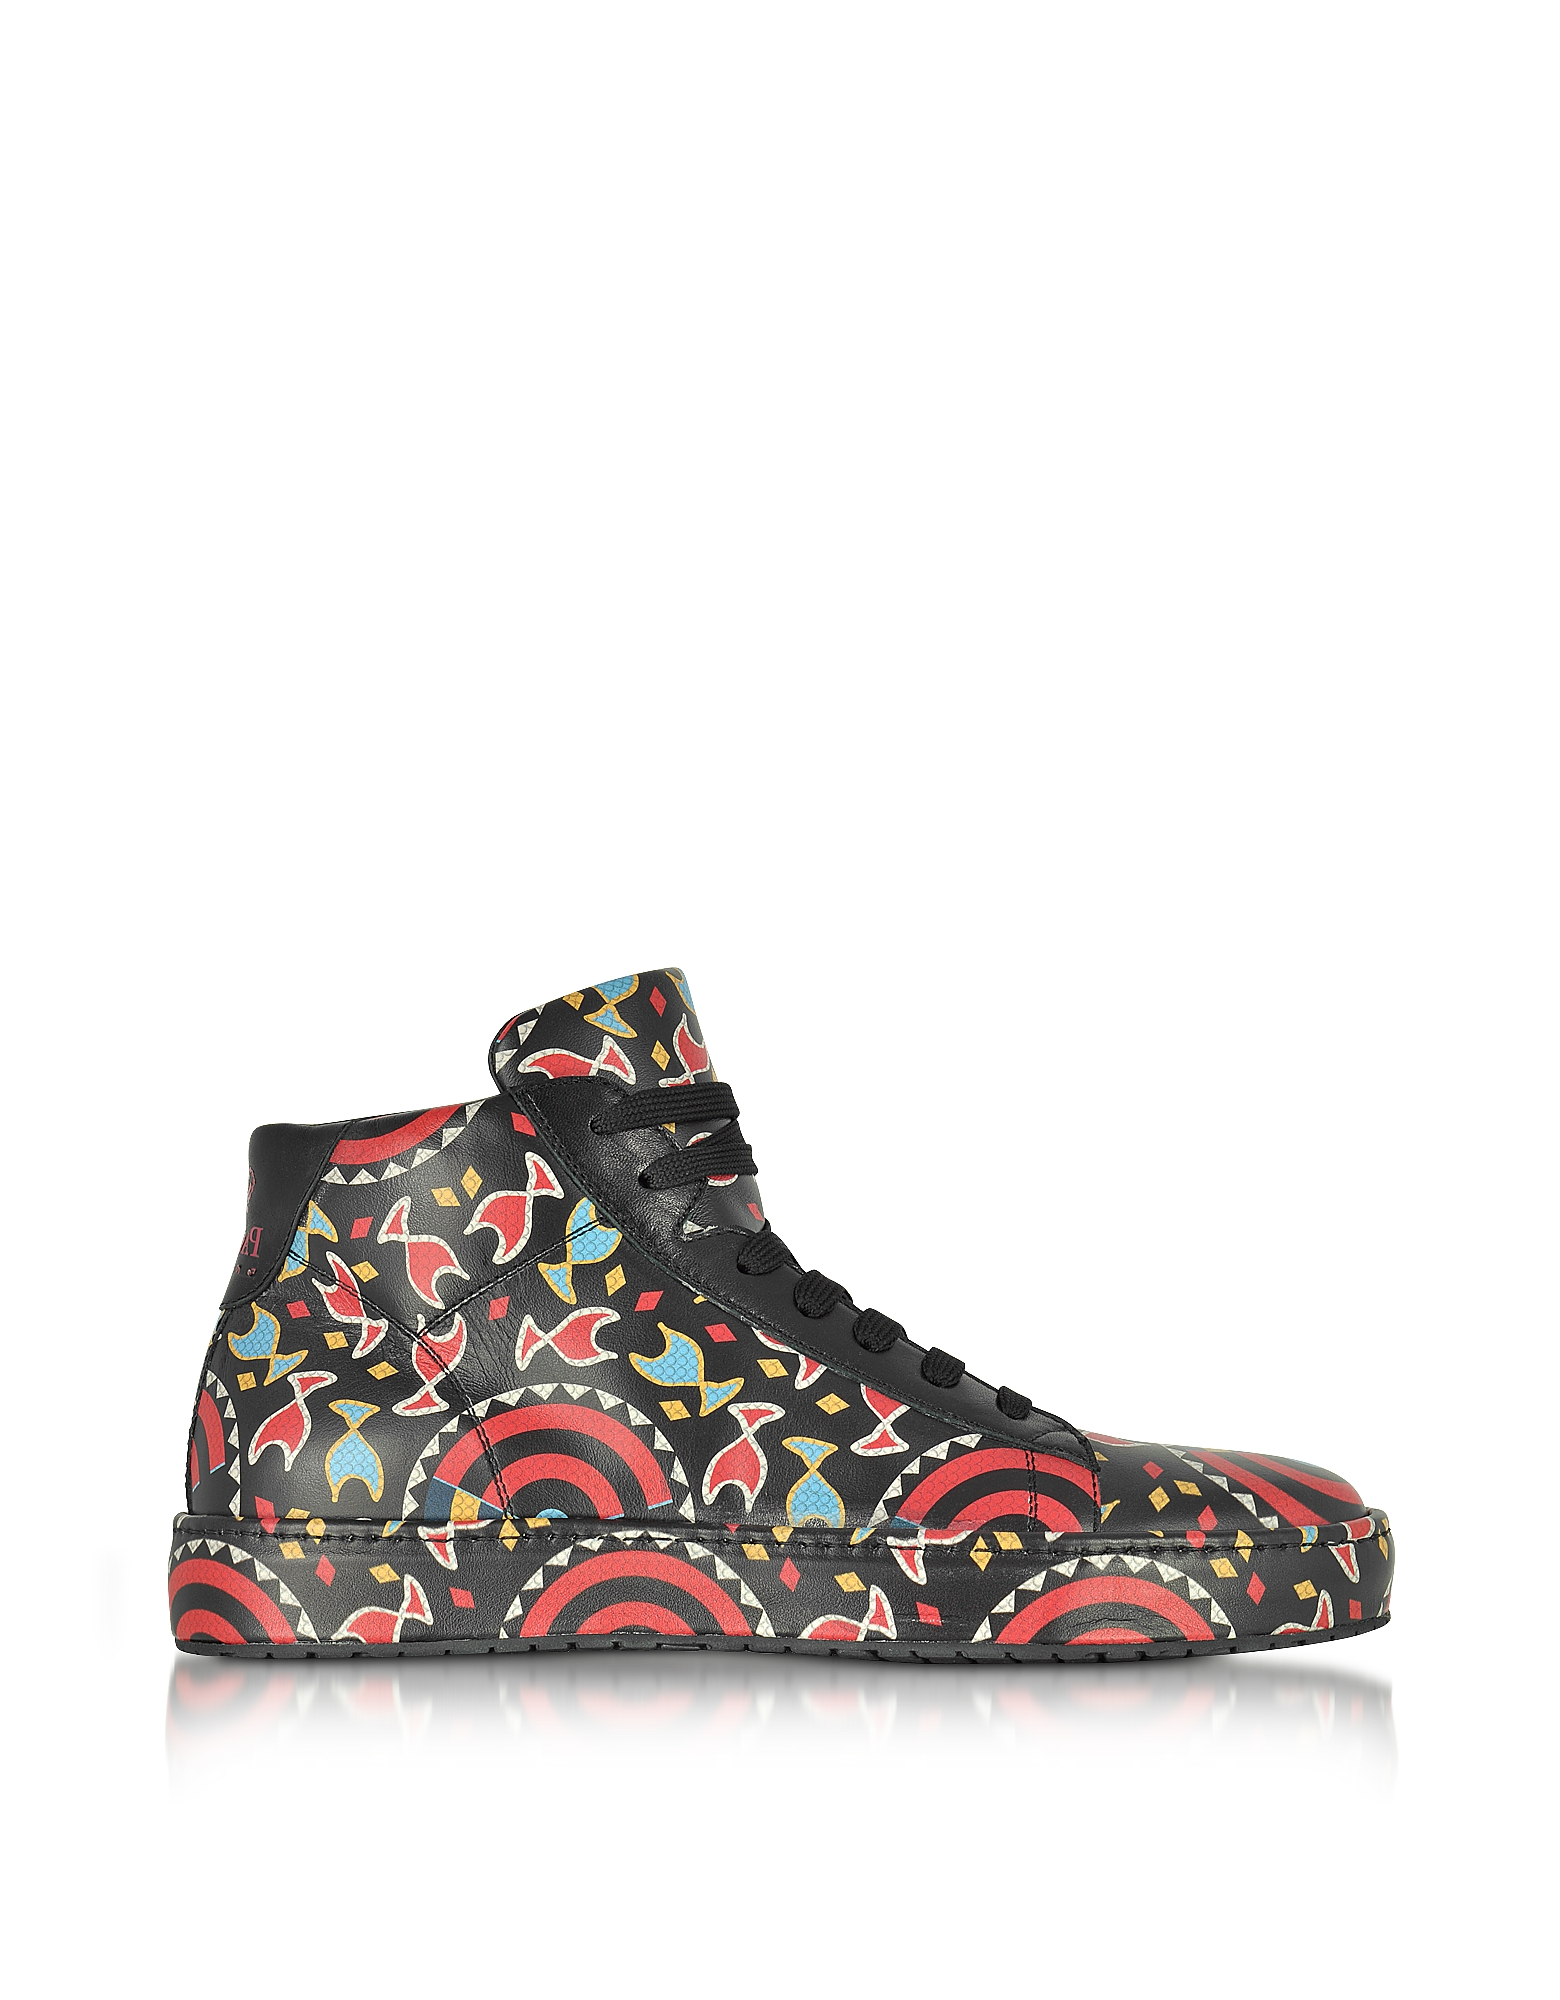 Cesare Paciotti Shoes, Multicolor Printed Leather High Top Men's Sneakers